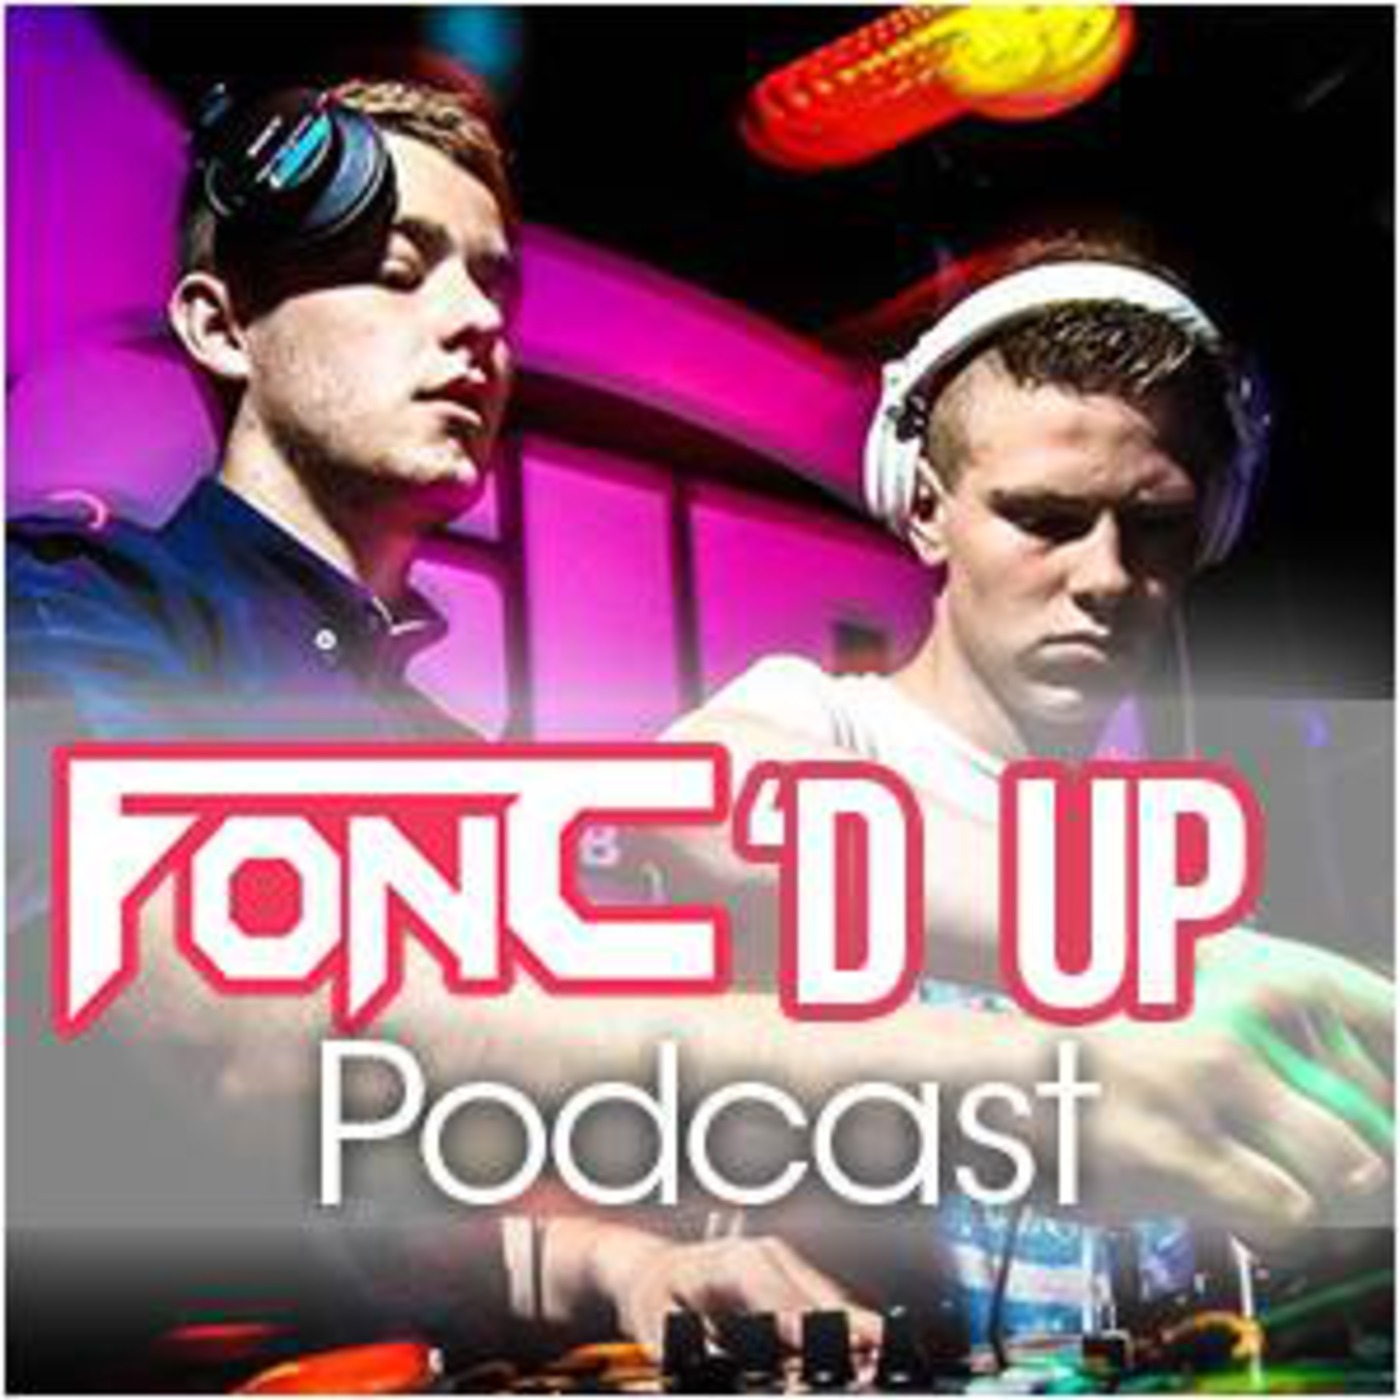 FONC'D UP PODCAST